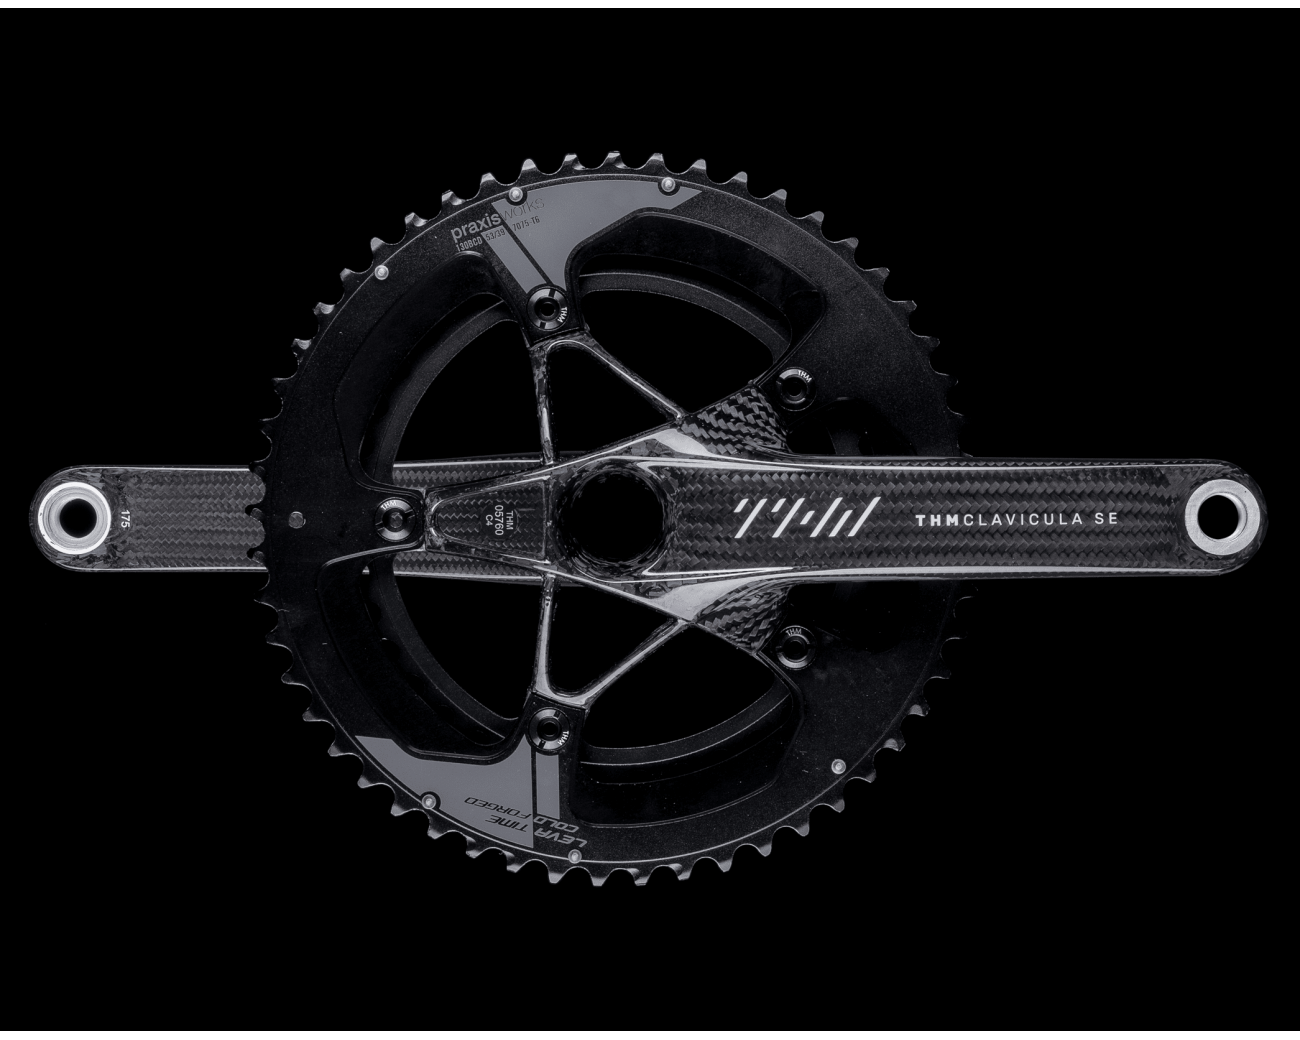 thm carbones clavicula se carbon power meter crankset with praxis chainrings